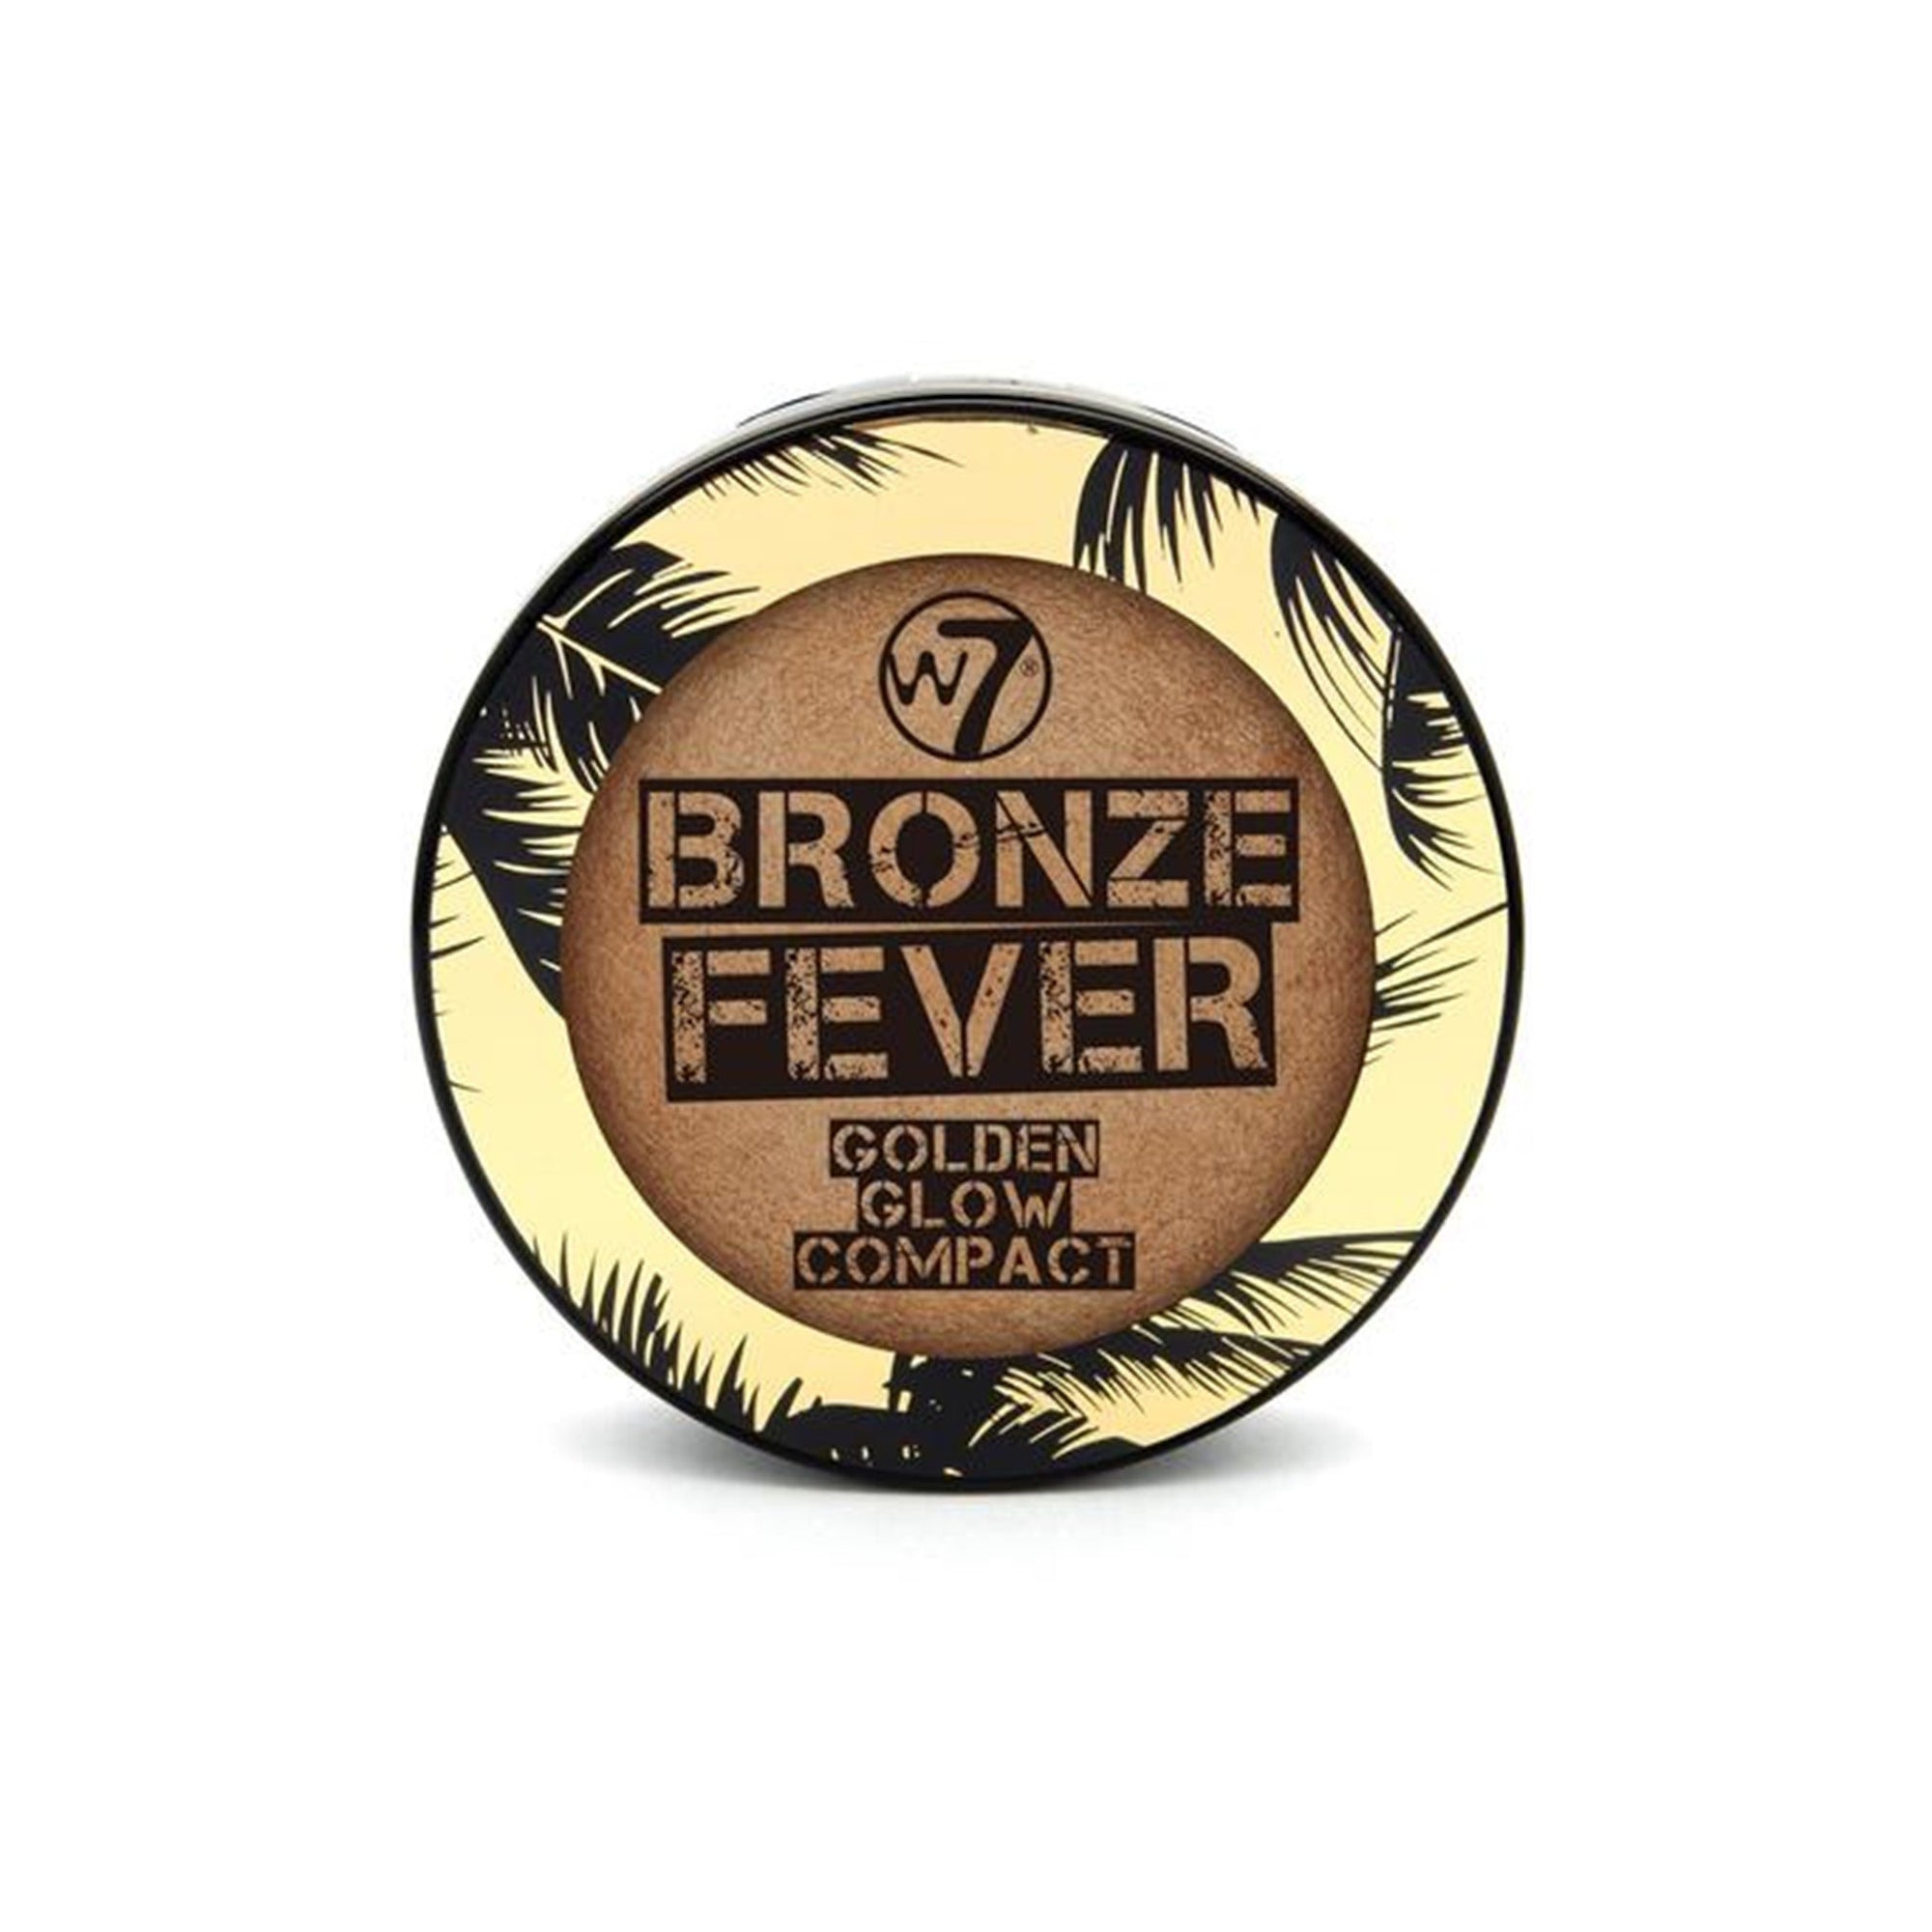 W7 Bronze Fever Golden Glow Compact